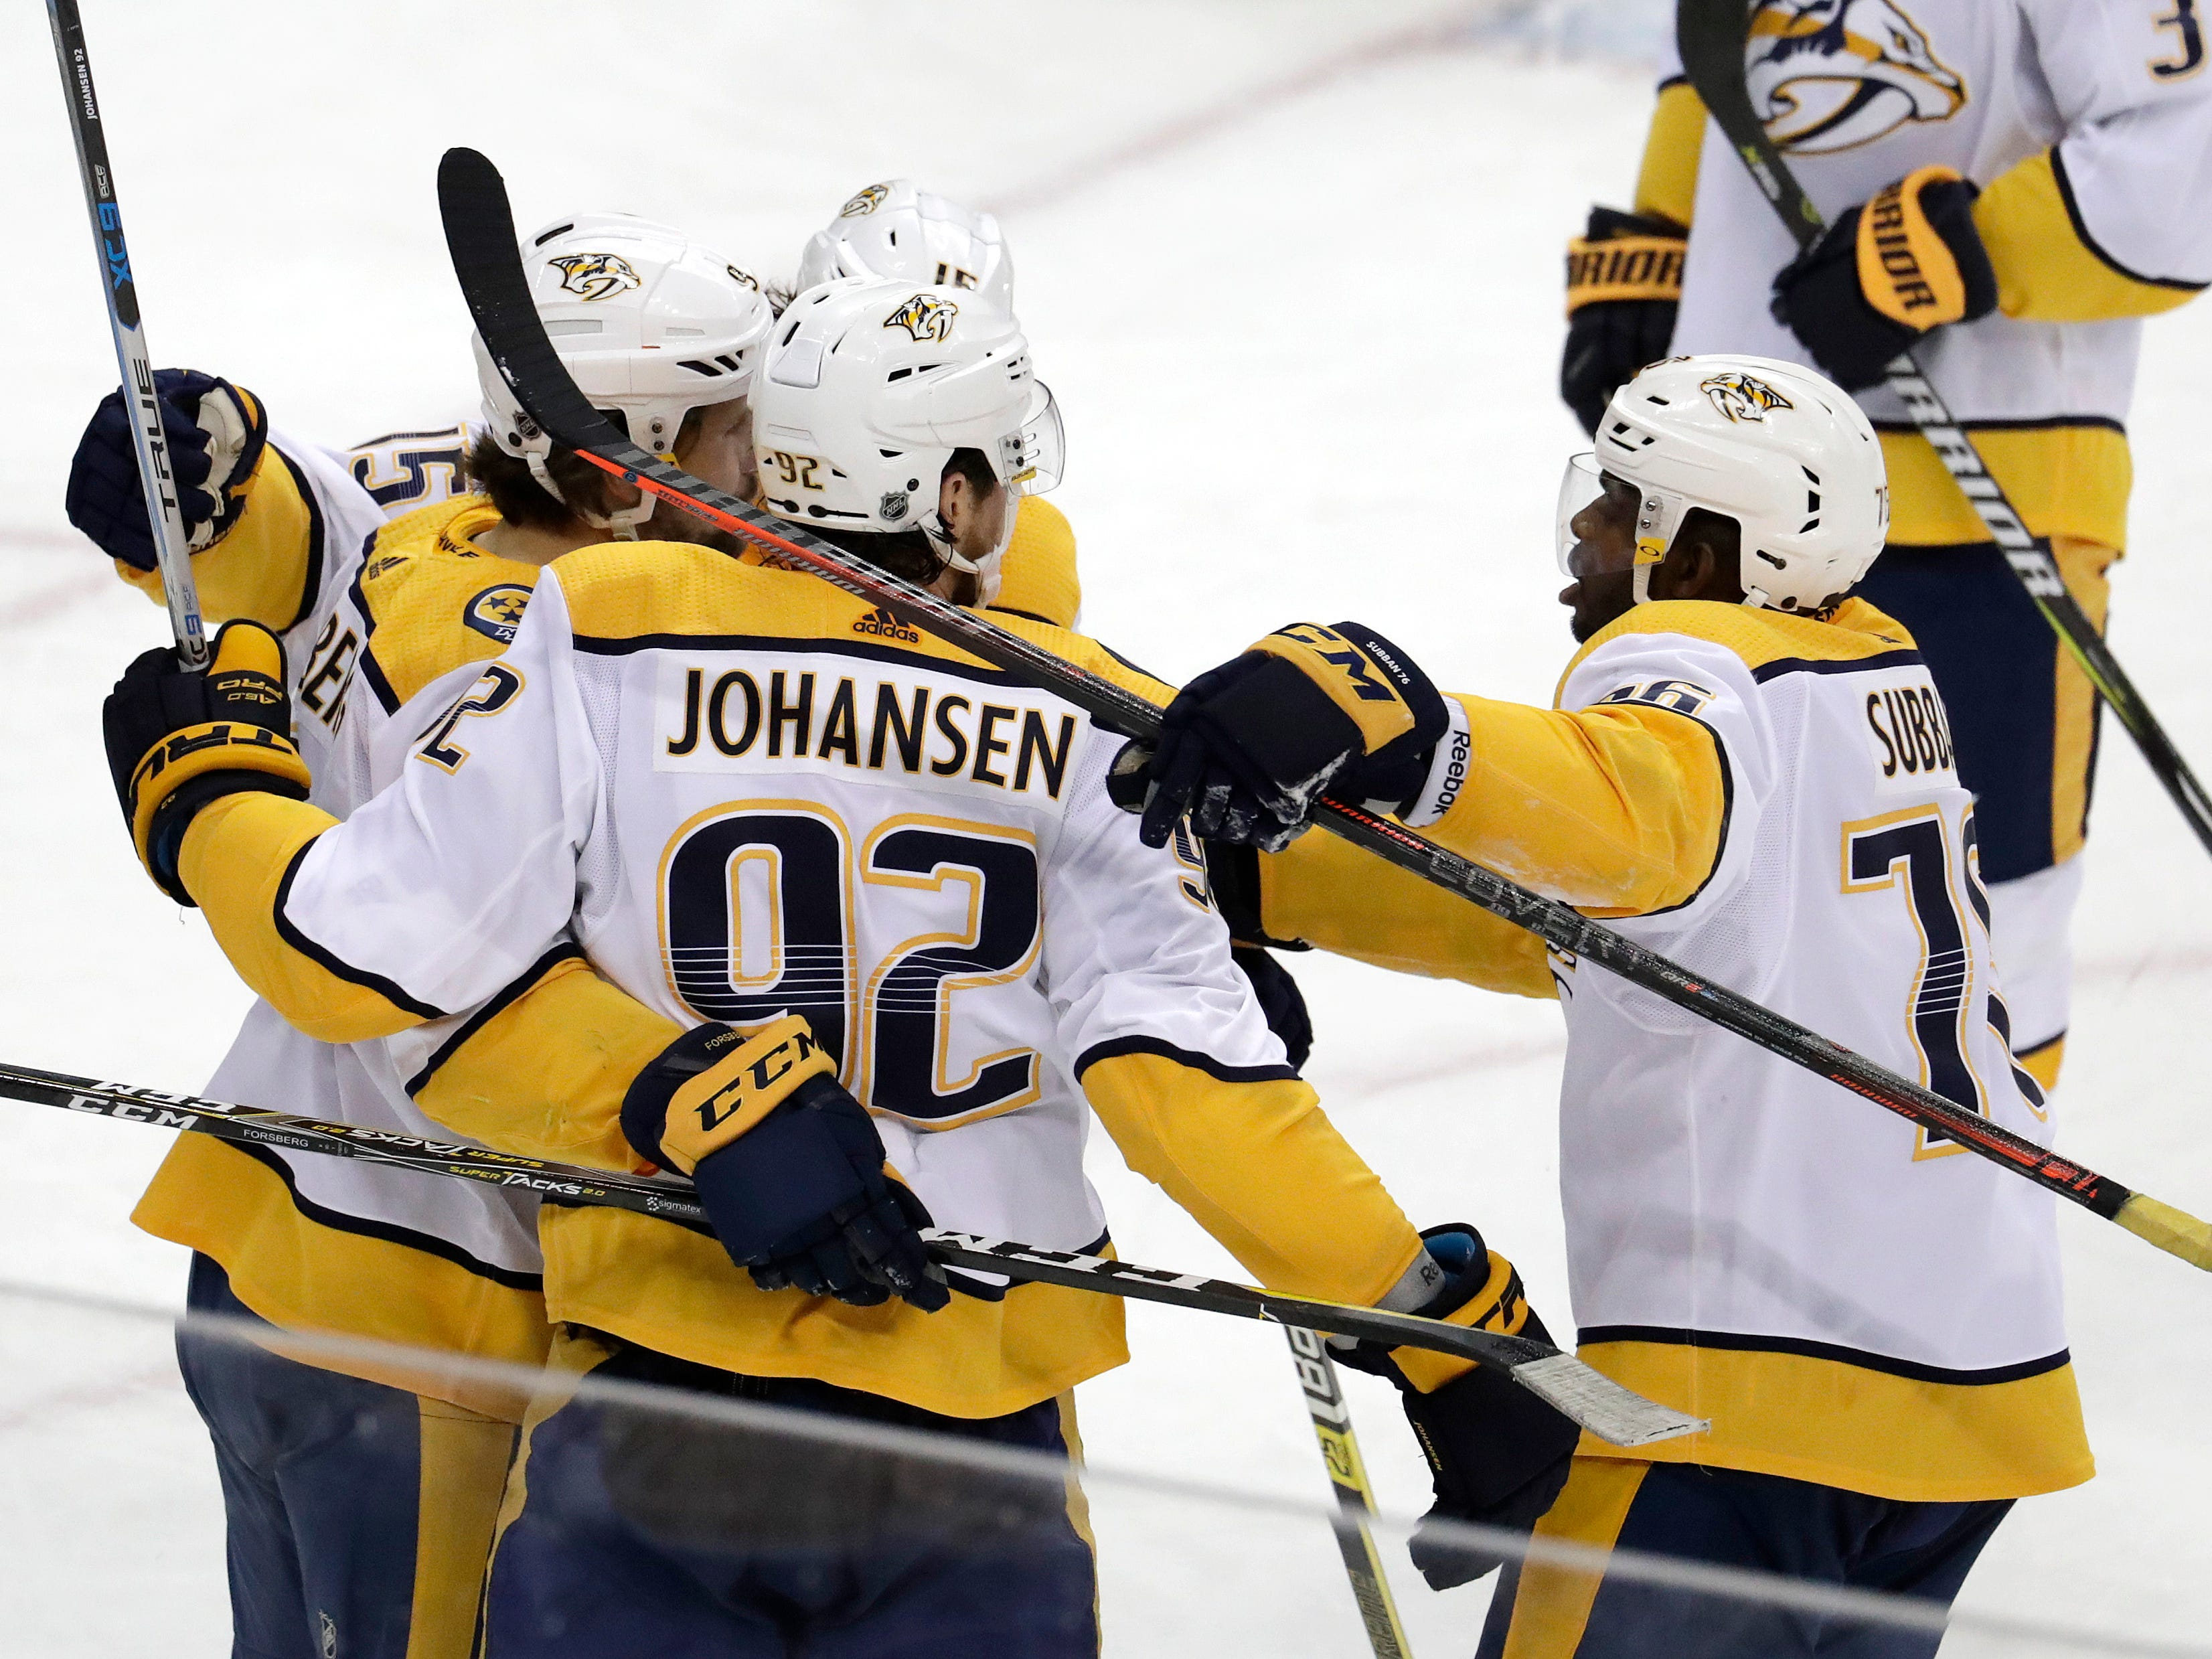 Nashville Predators left wing Filip Forsberg, left, of Sweden, celebrates his goal against the New Jersey Devils with teammates during the third period of an NHL hockey game, Thursday, Oct. 25, 2018, in Newark, N.J. The Predators won 4-3 in overtime.